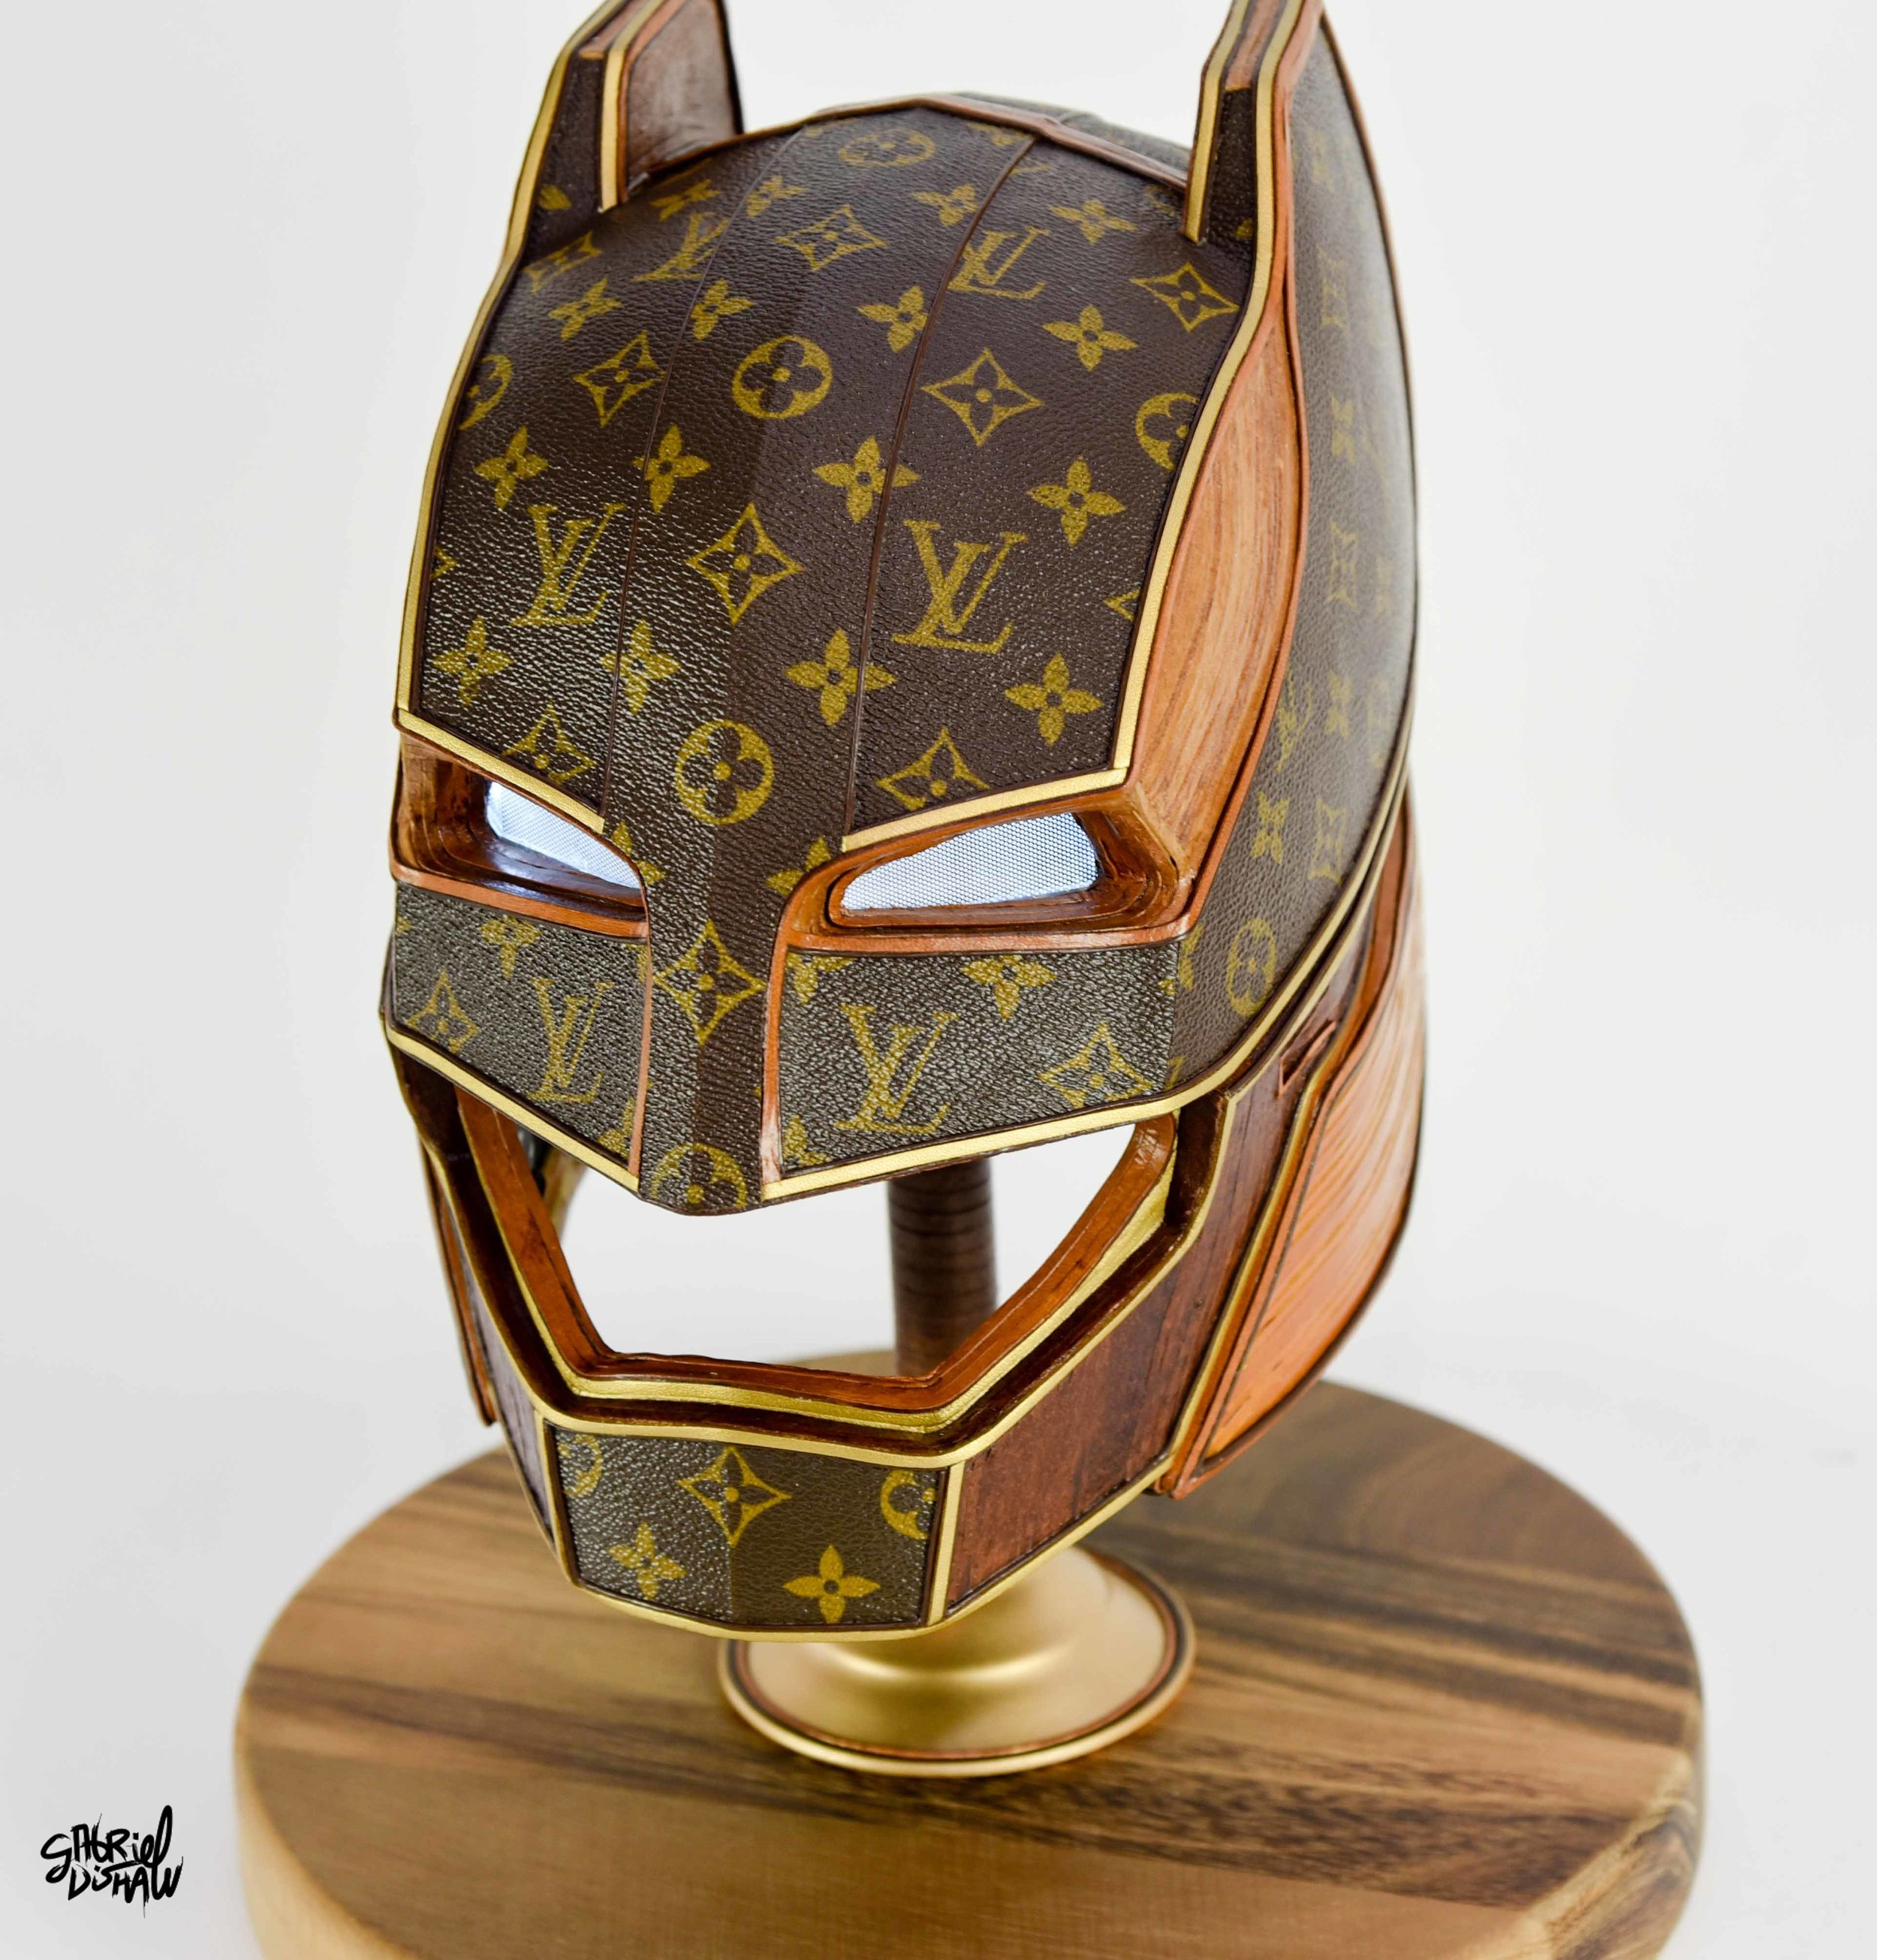 Vuitton Knight -